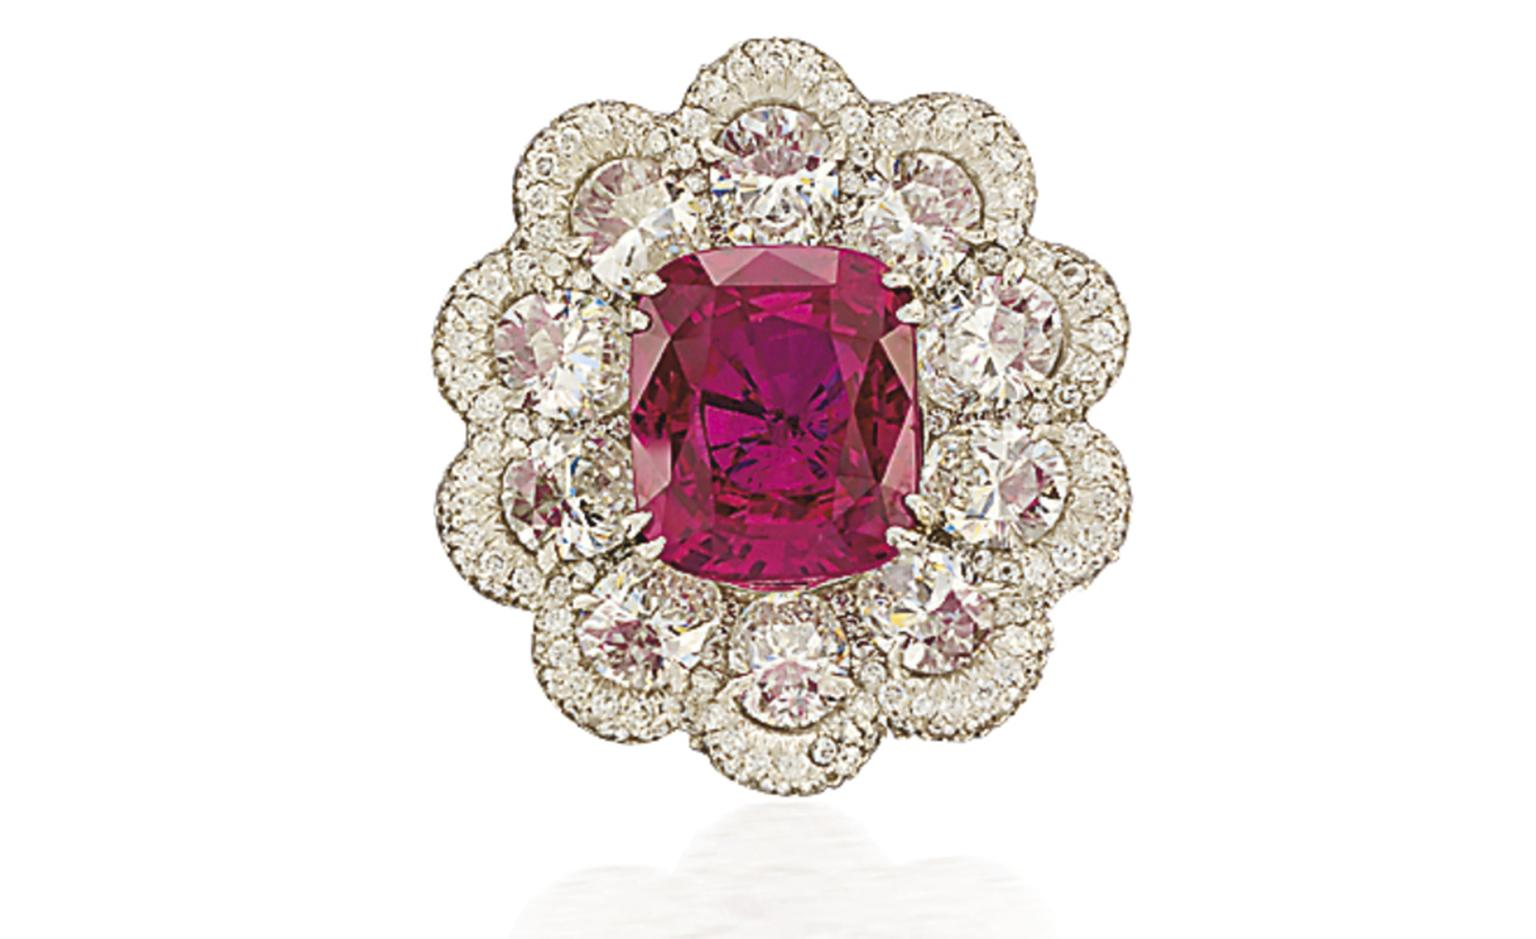 Lot 72. A fine ruby and diamond ring. Designed as a cluster centring upon a cushion-shaped ruby weighing 7.01 carats surrounded by oval-shaped diamonds weighing a total of 4.18 carats to the pavé-set diamond scalloped border and similarly-set di...